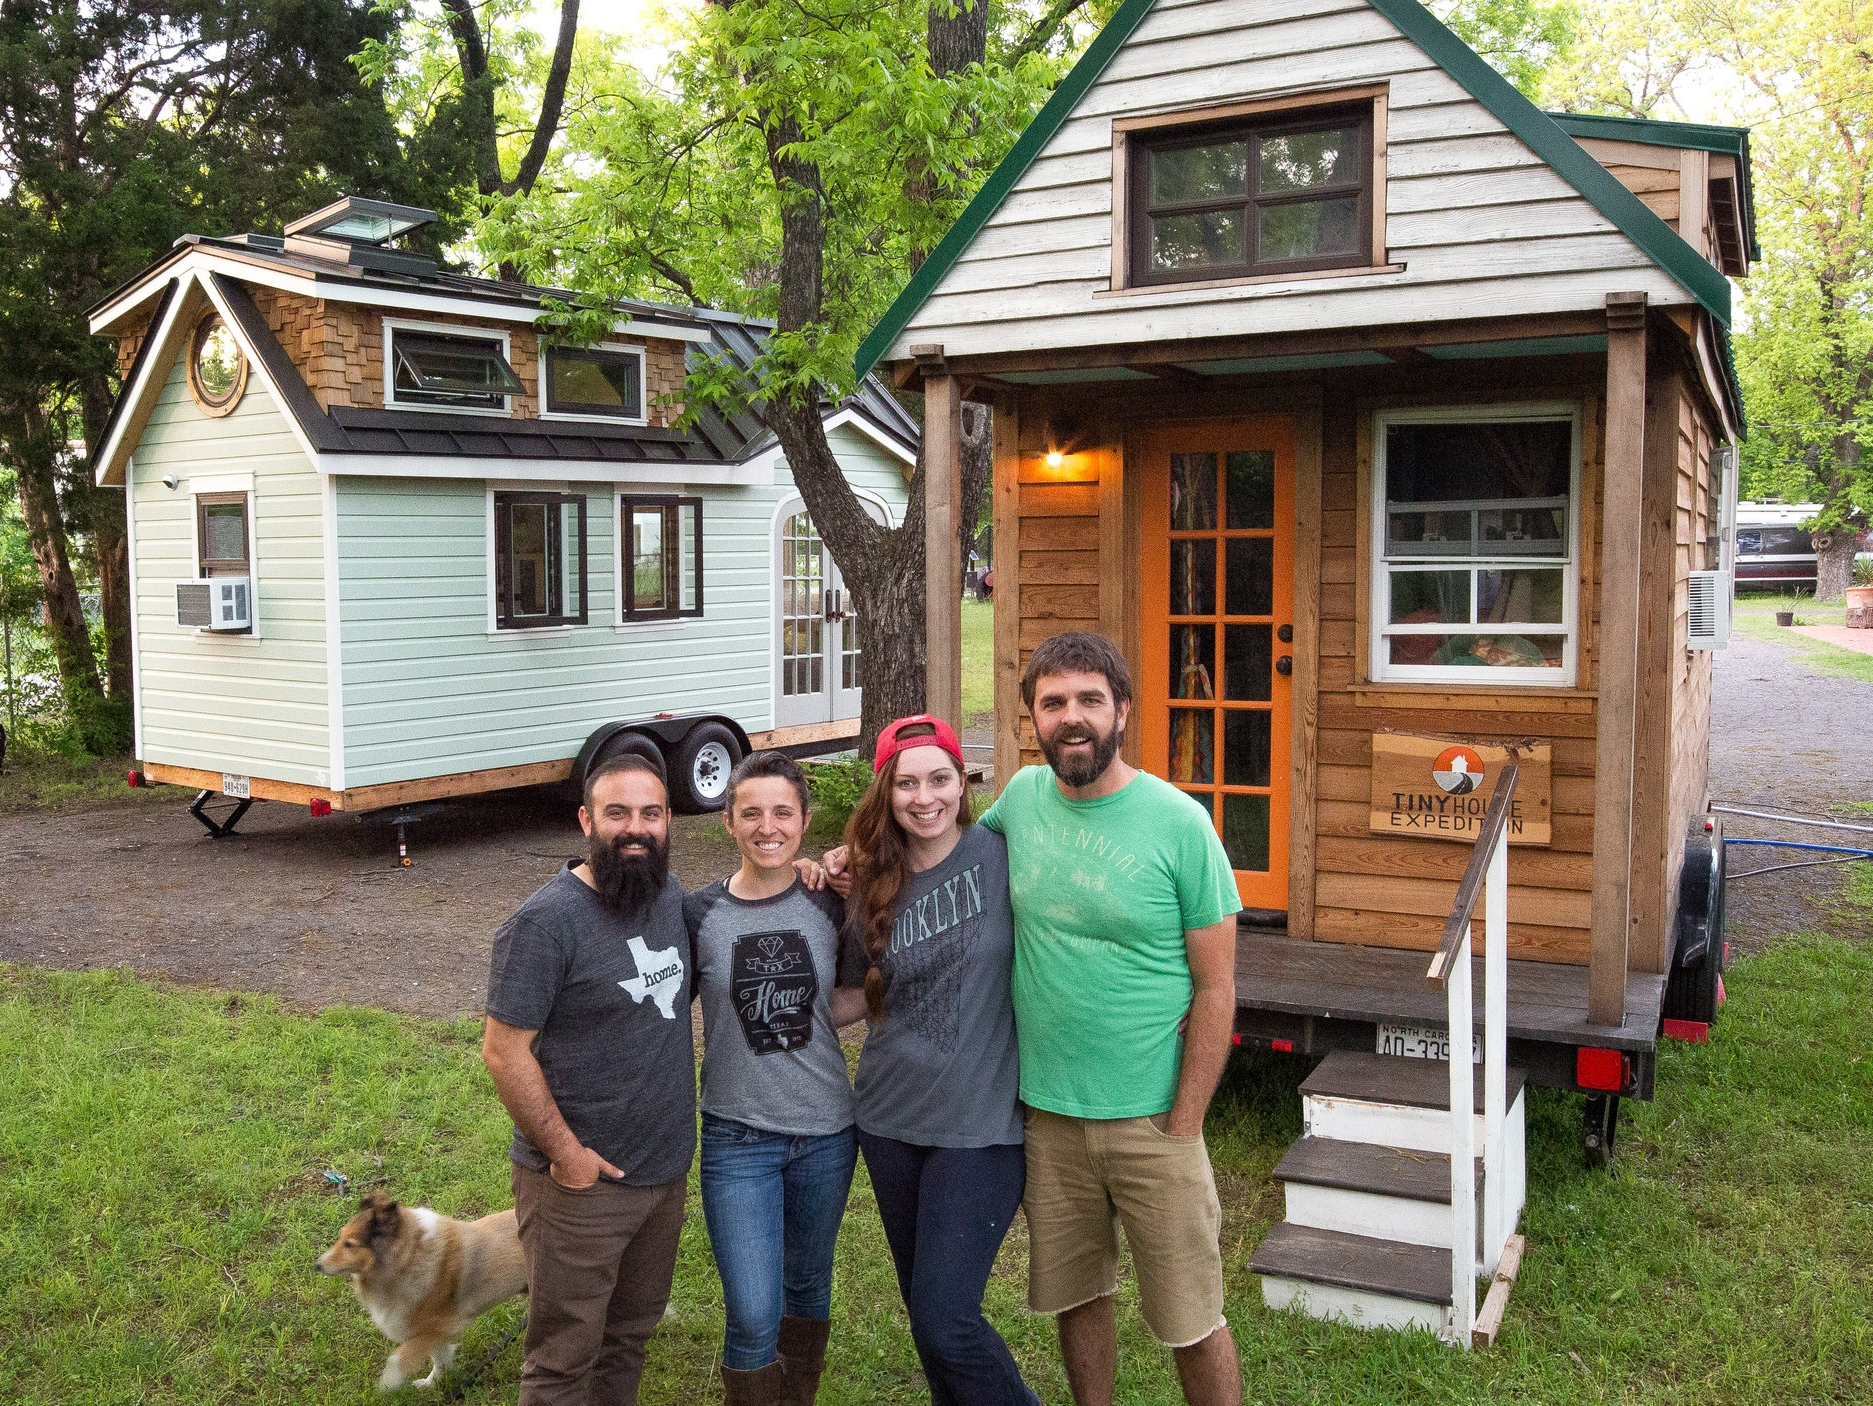 With Randi & Cody of The Best Little House in Texas